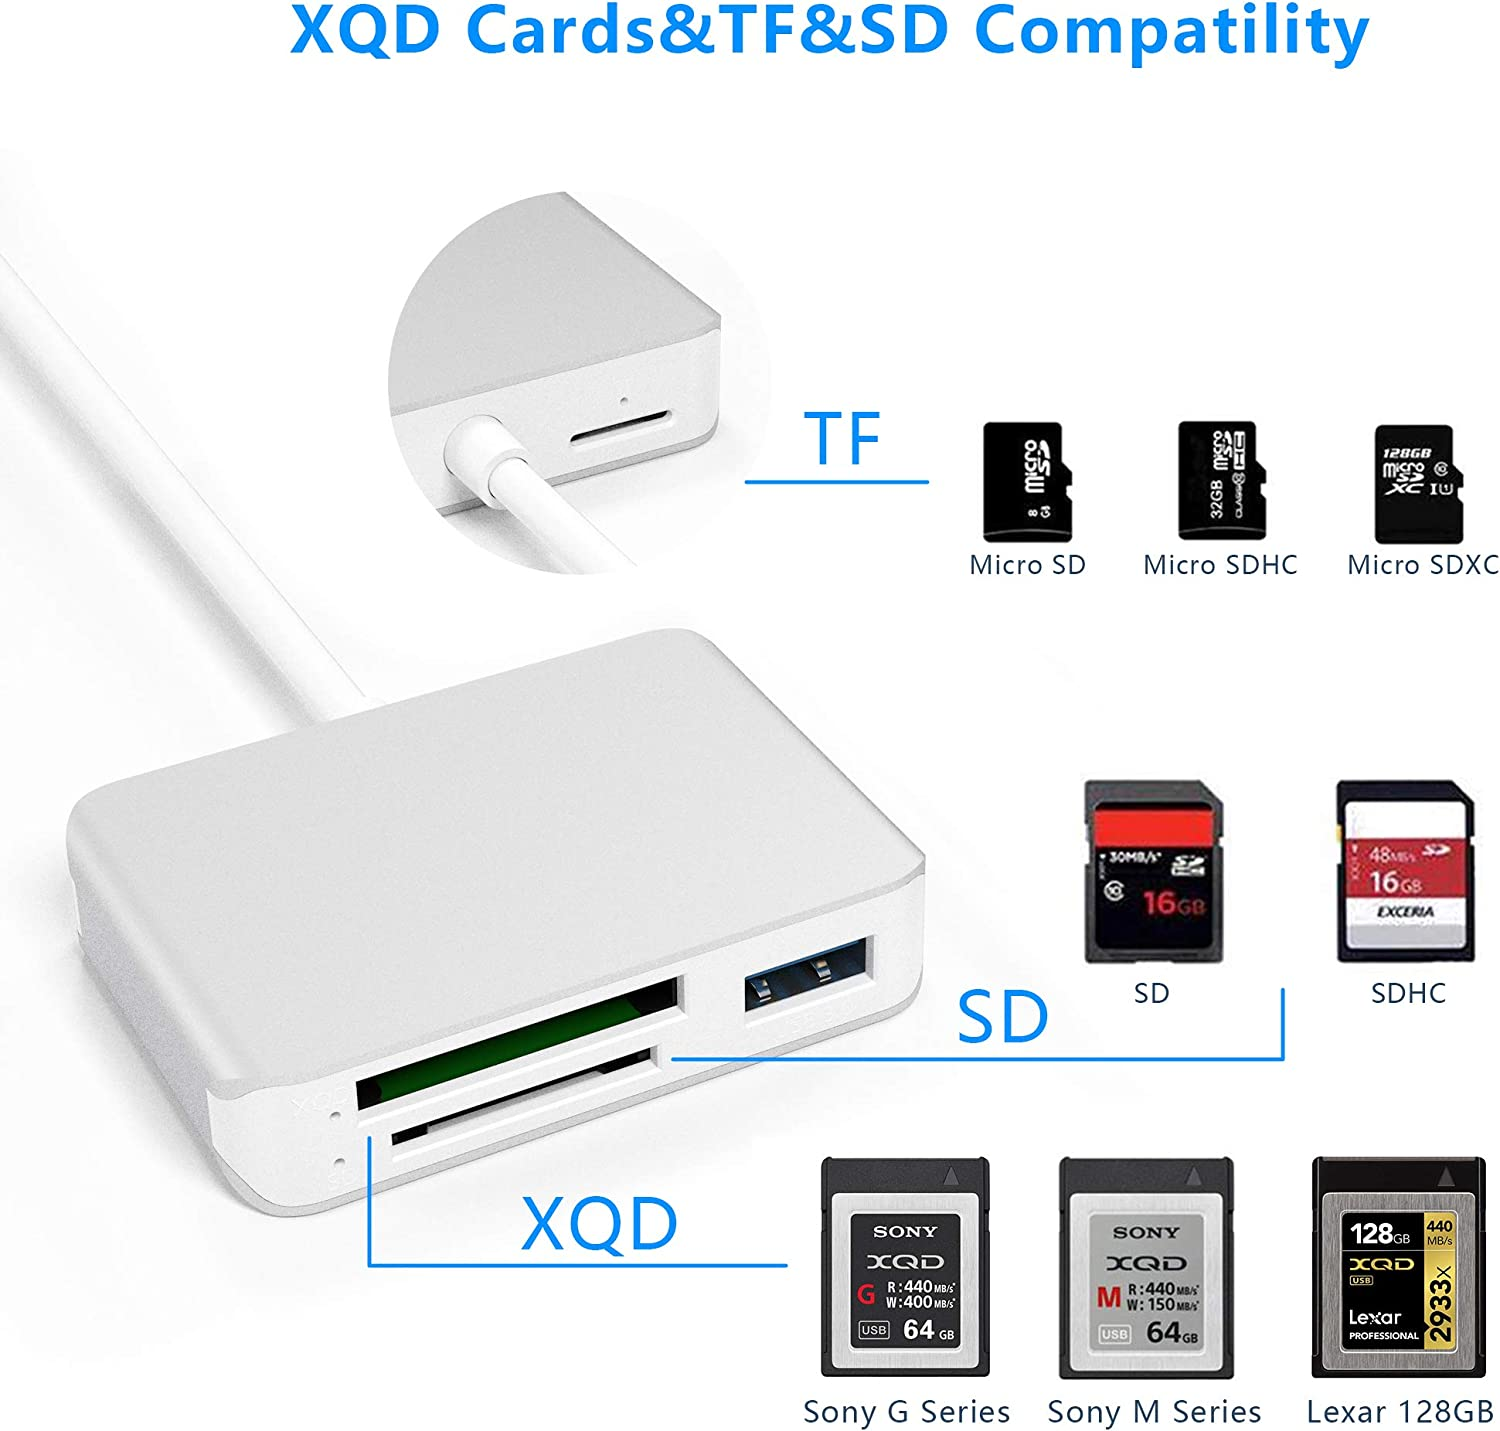 HC//XC ,TF Compatible for Type-C Laptop Sony G Series Support Windows//Mac OS Lexar USB Mark Card XQD Card Reader USB C,XQD//SD//TF Card Reader Type C,Dual USB3.0 Card Adapter Read 3 Cards for SD